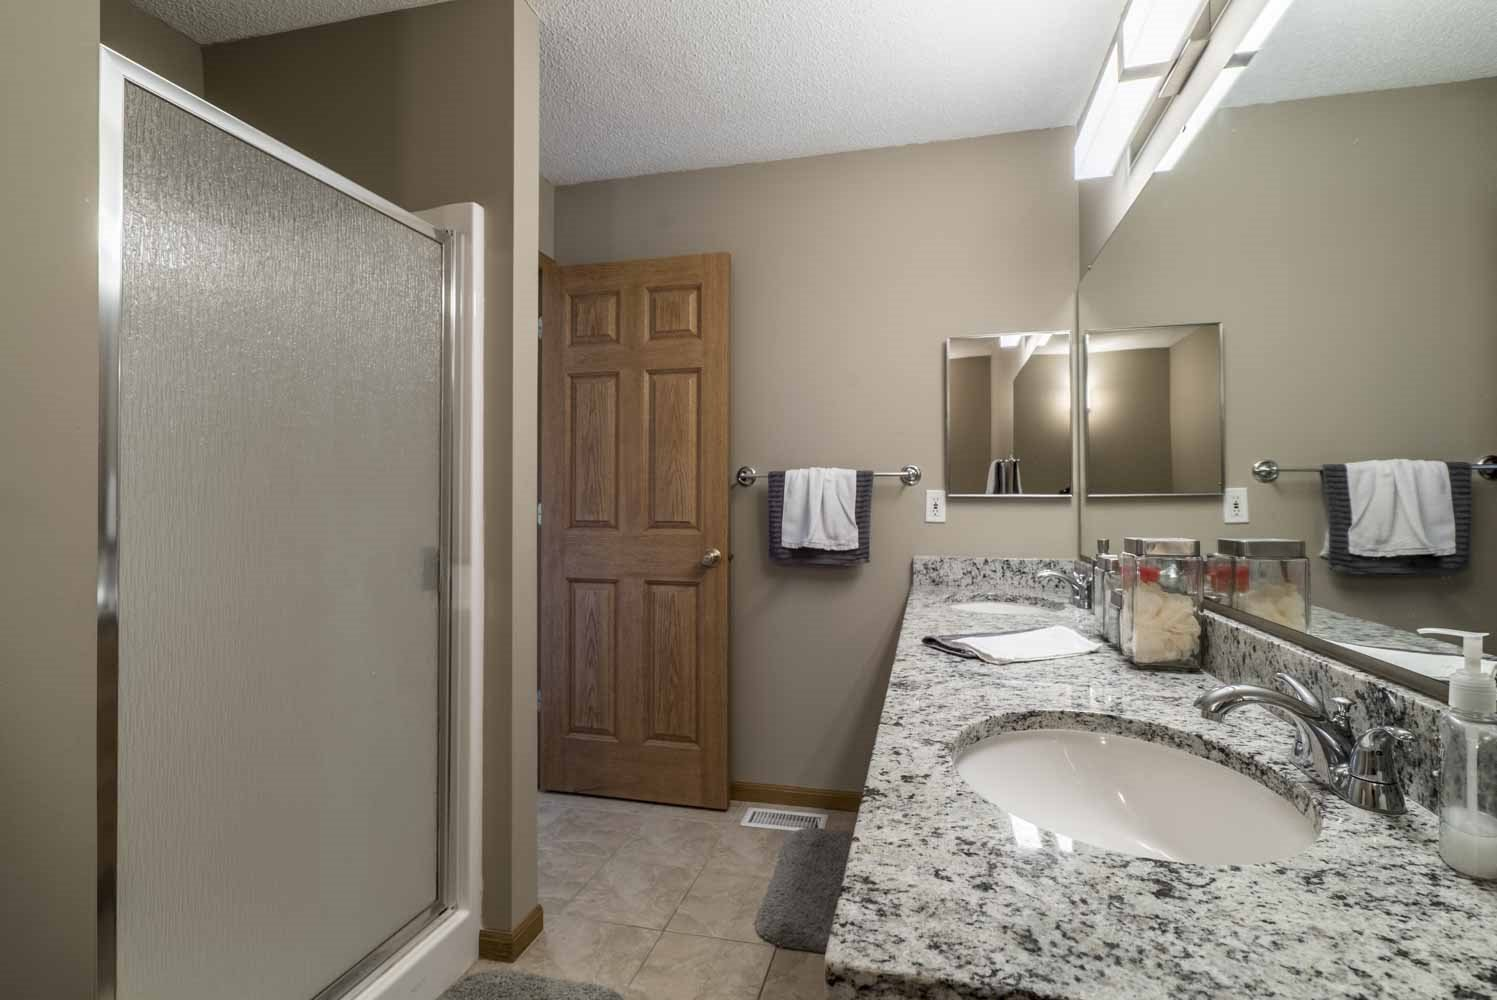 Master bath with shower and tub at at Southwind Villas in southwest Omaha in La Vista, NE, 68128